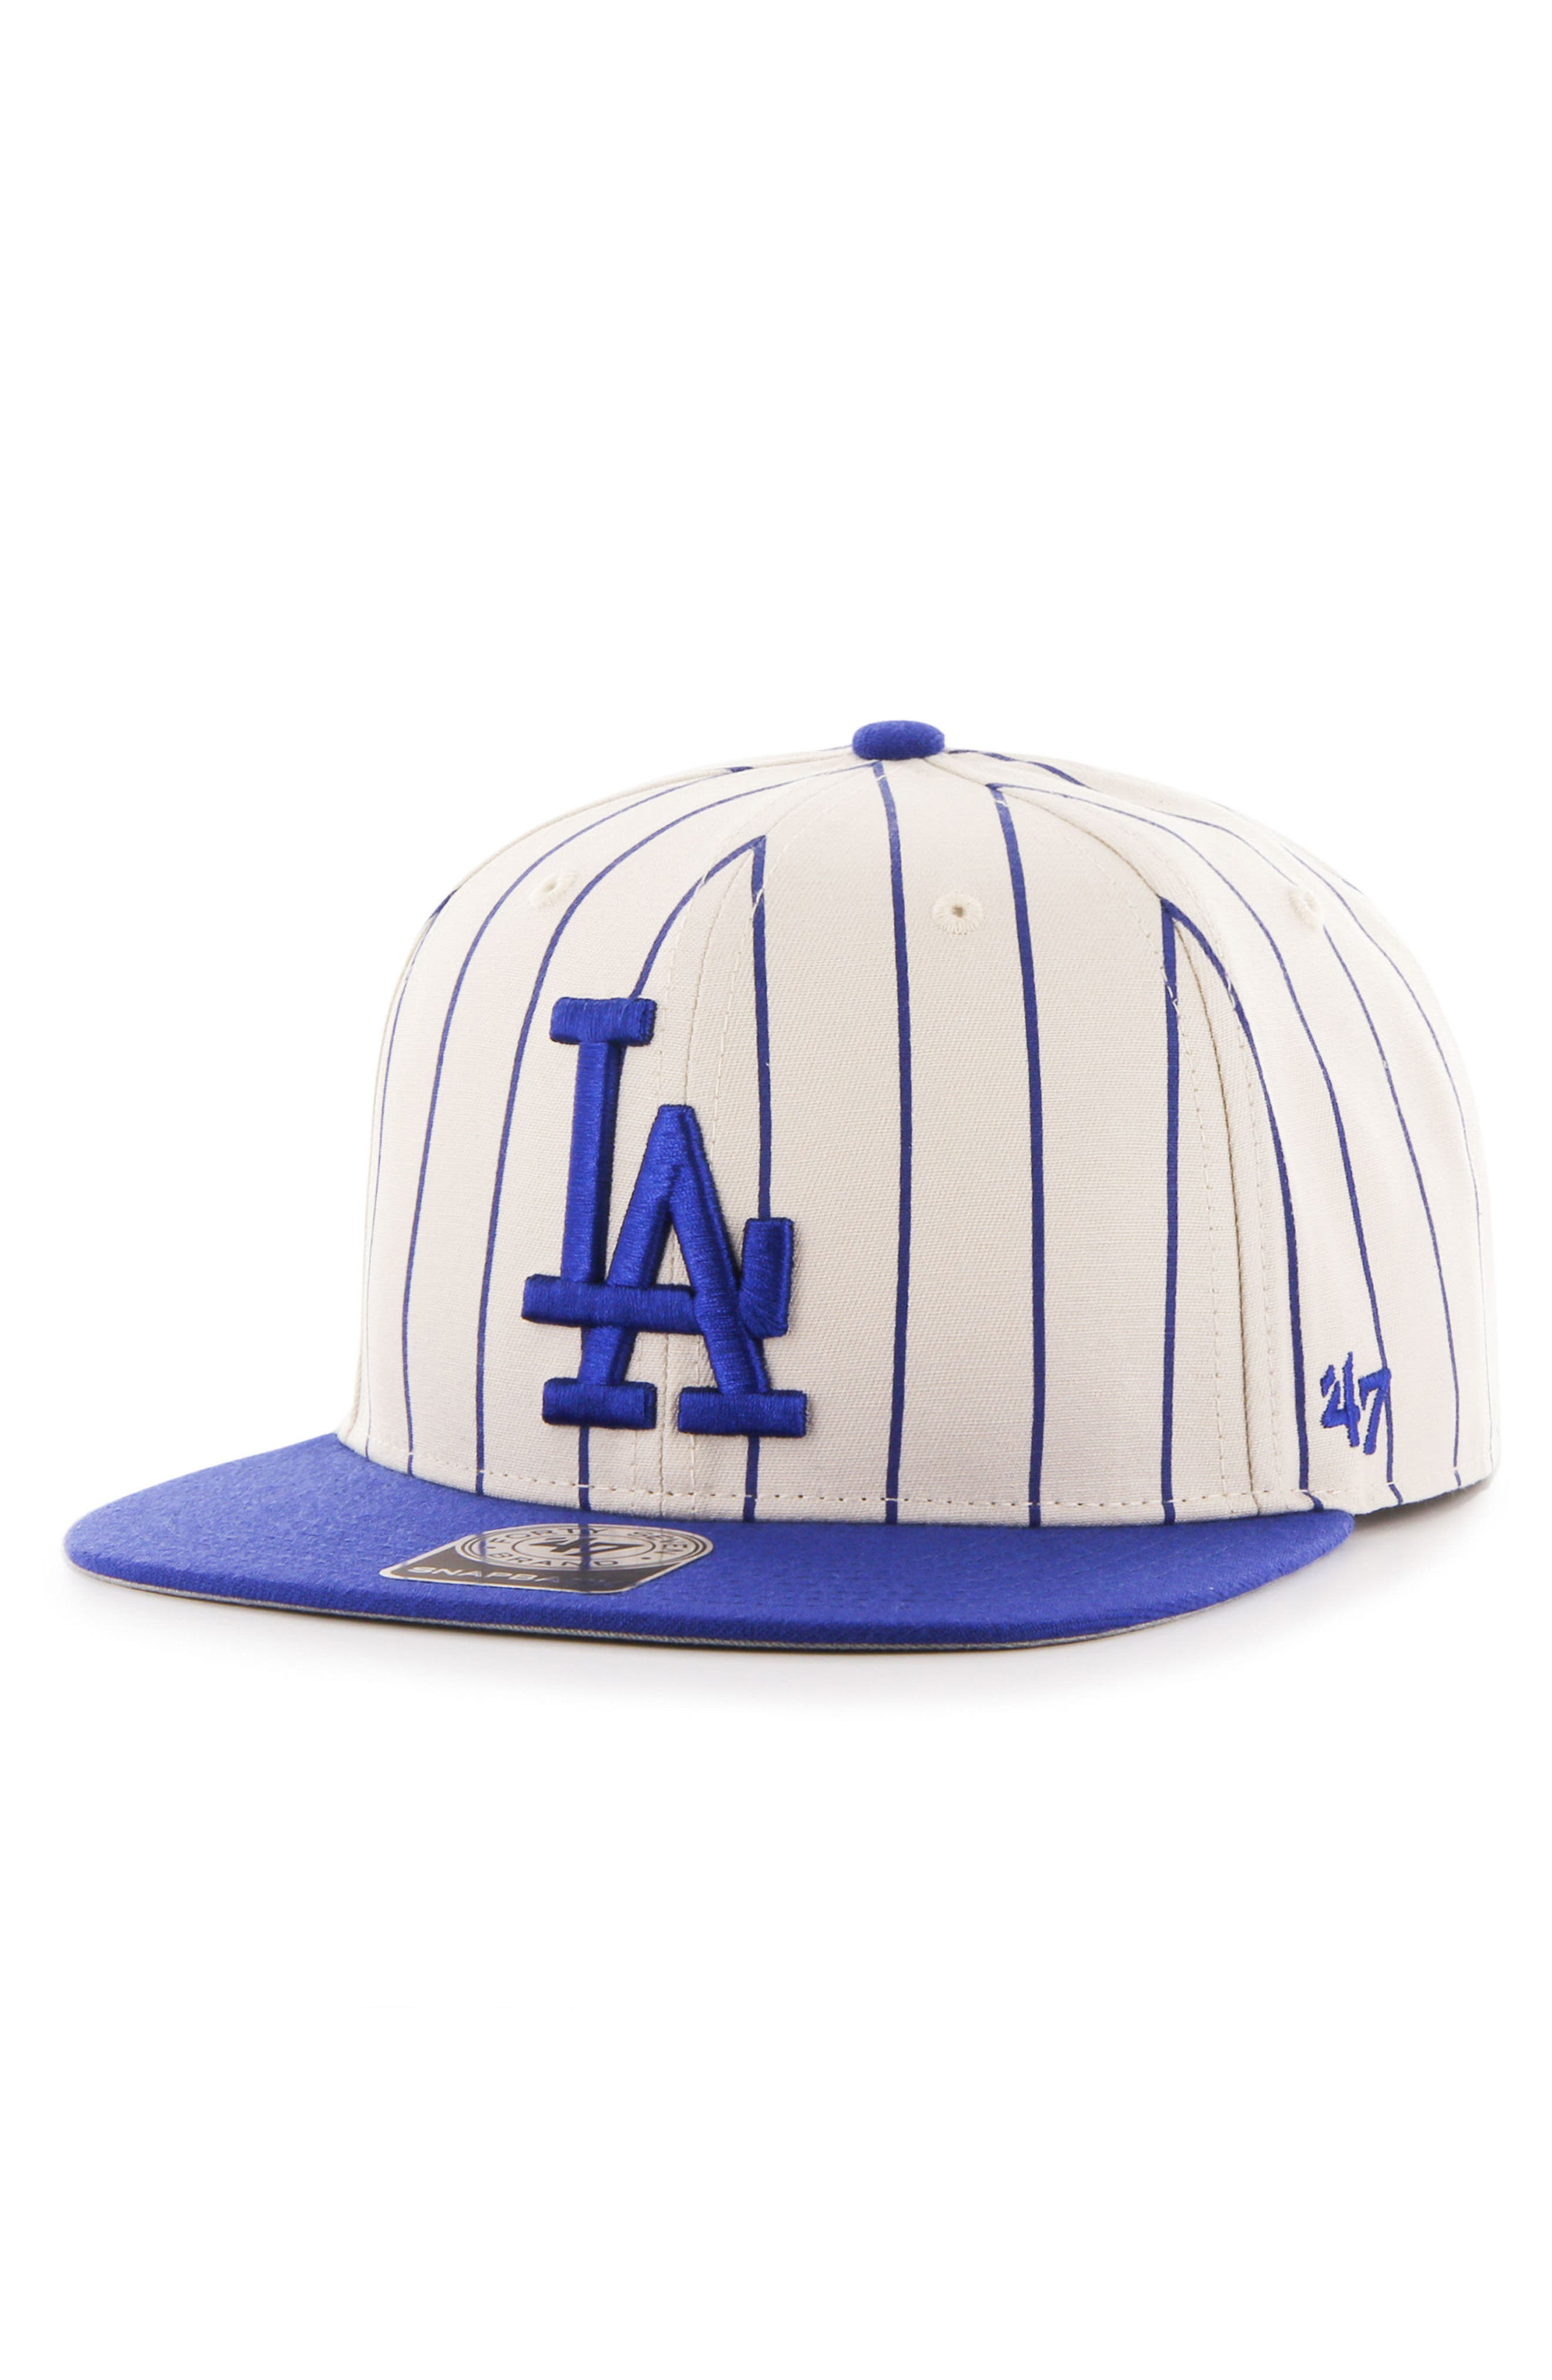 LA Dodgers Pinstripe Baseball Cap,                         Main,                         color, 100